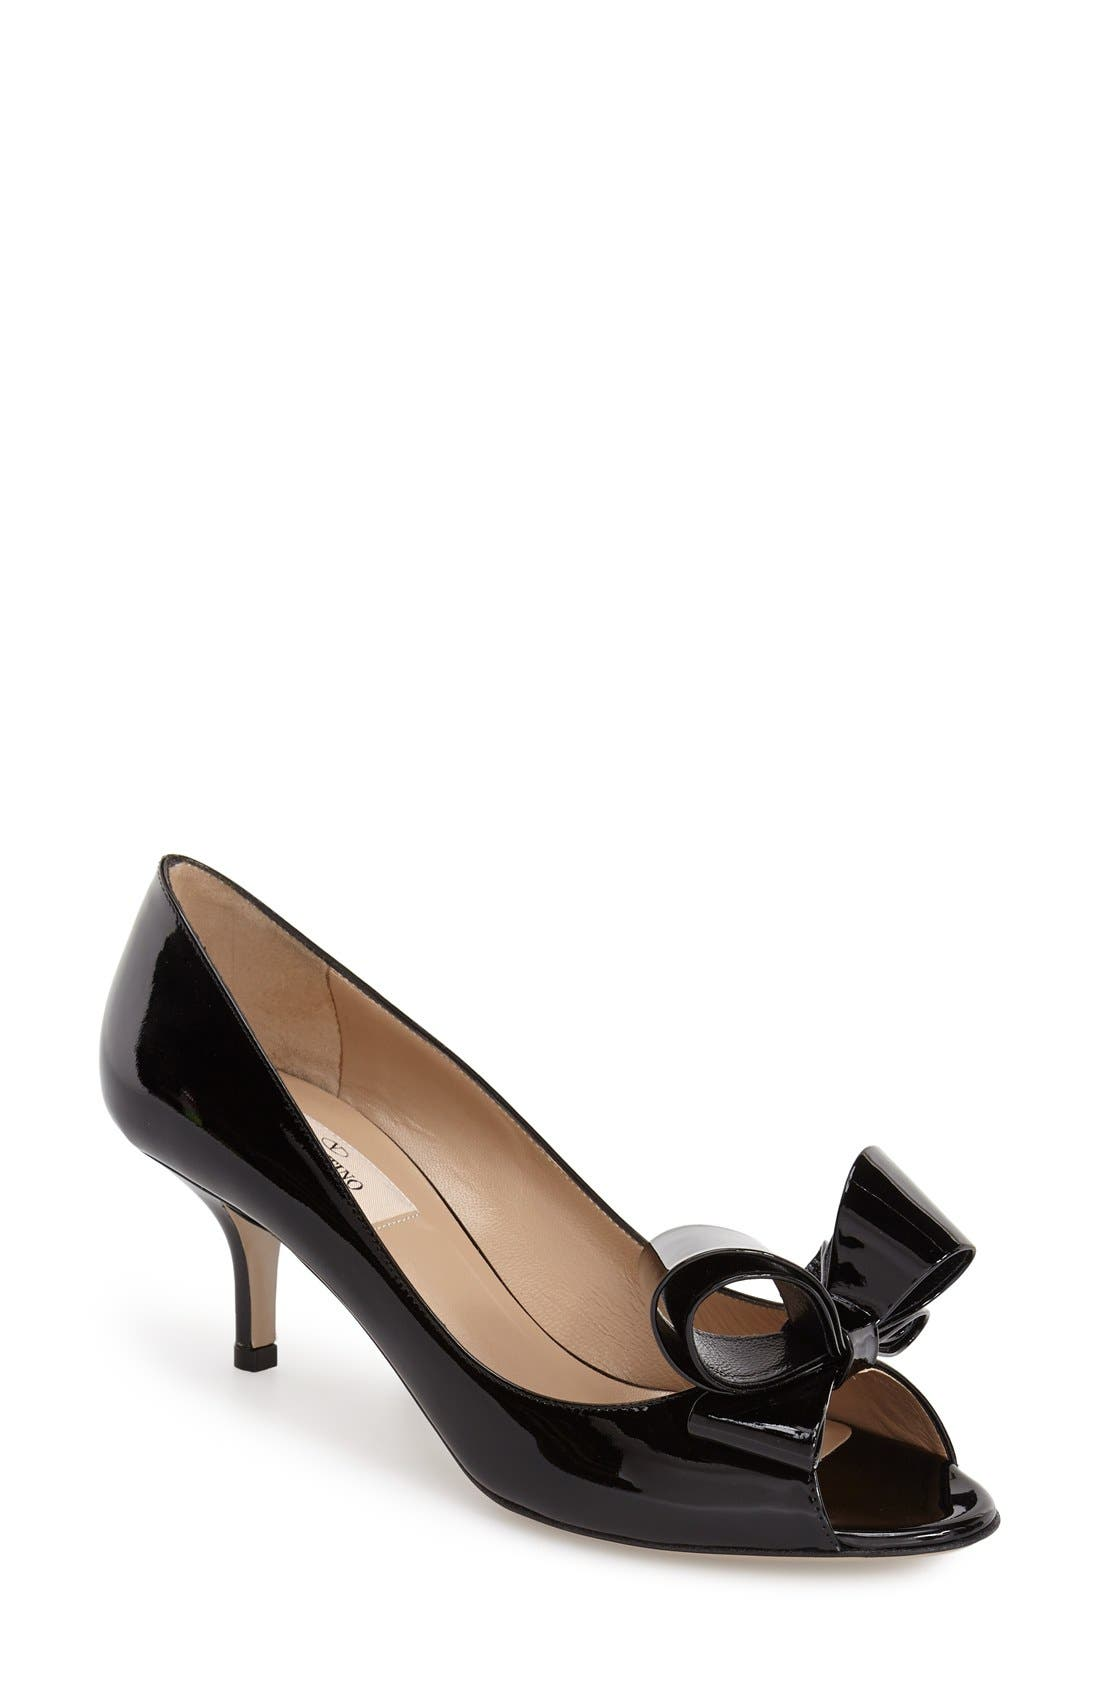 Alternate Image 1 Selected - VALENTINO GARAVANI Couture Bow Pump (Women)